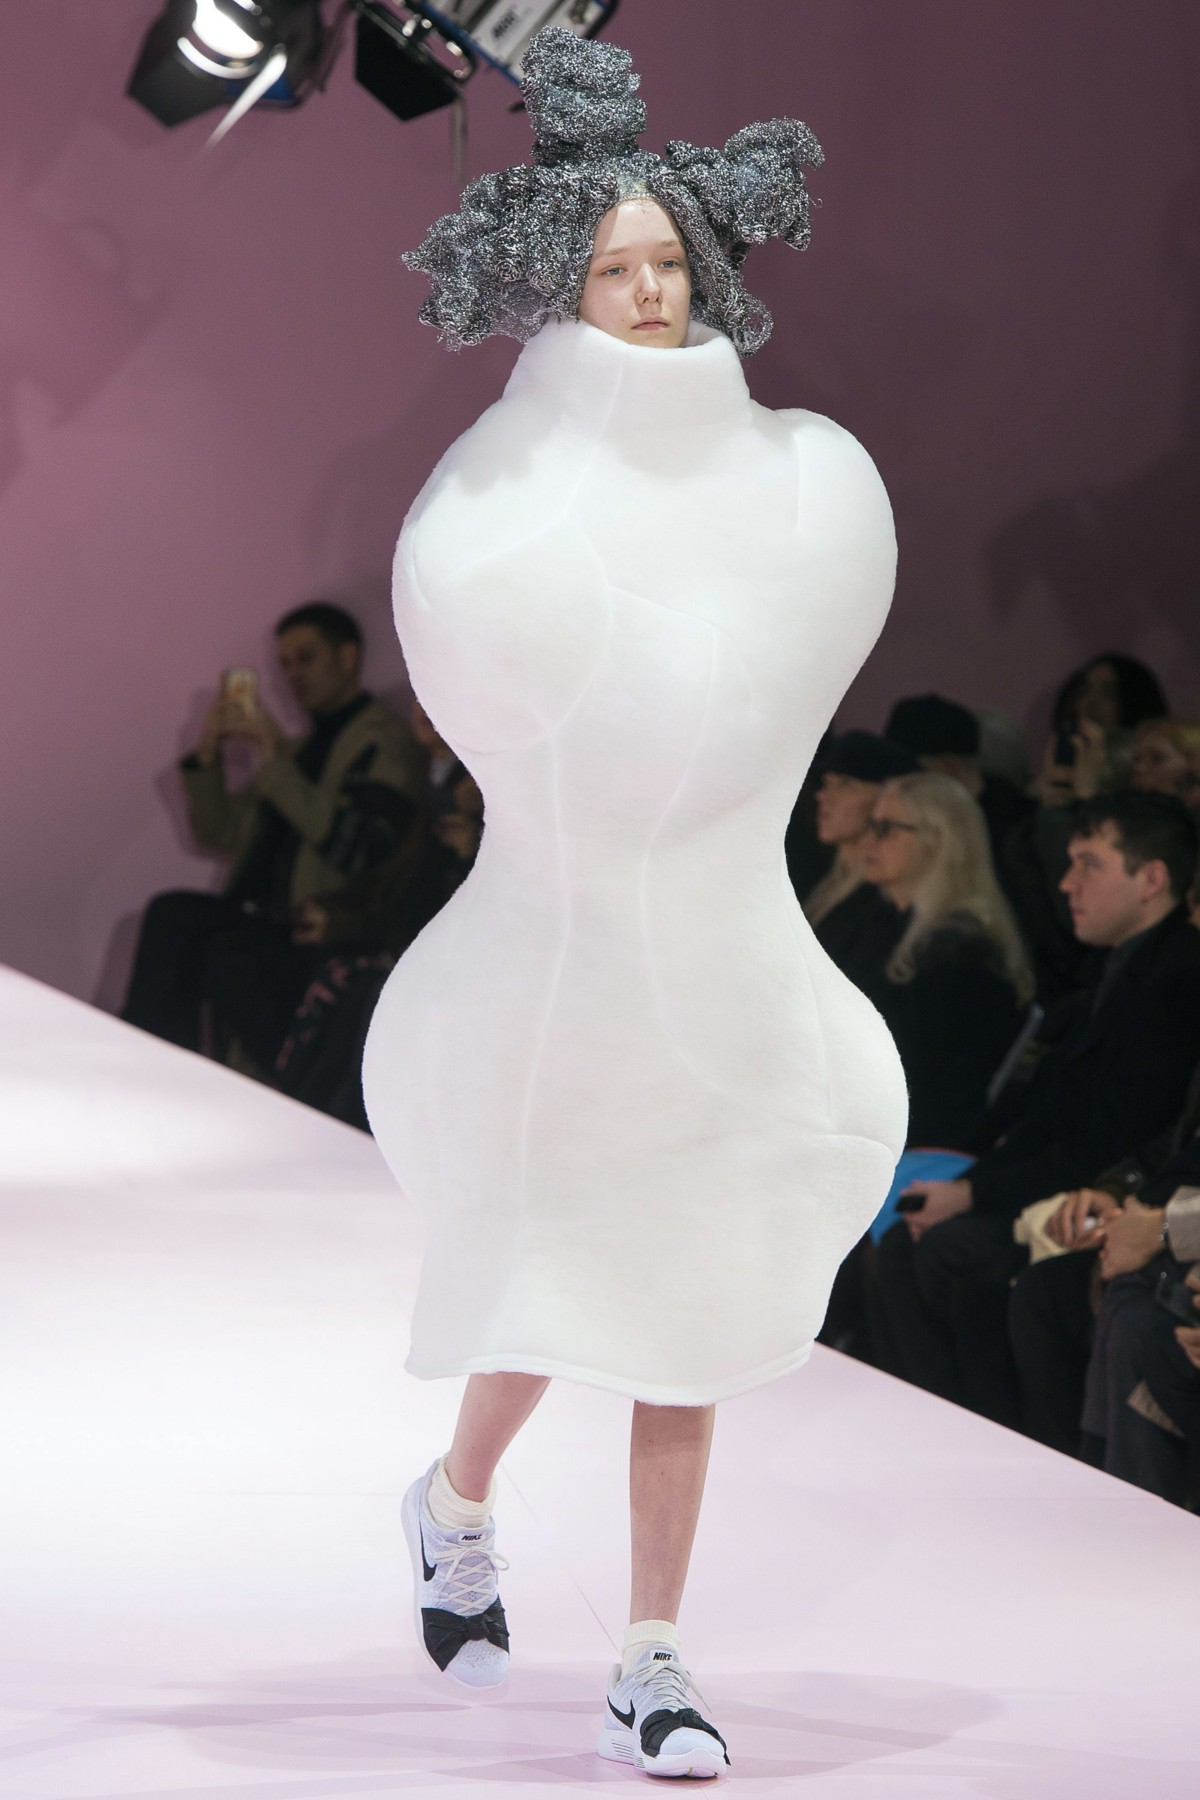 d99ef6d3 Why are Fashion shows filled with unwearable garments?